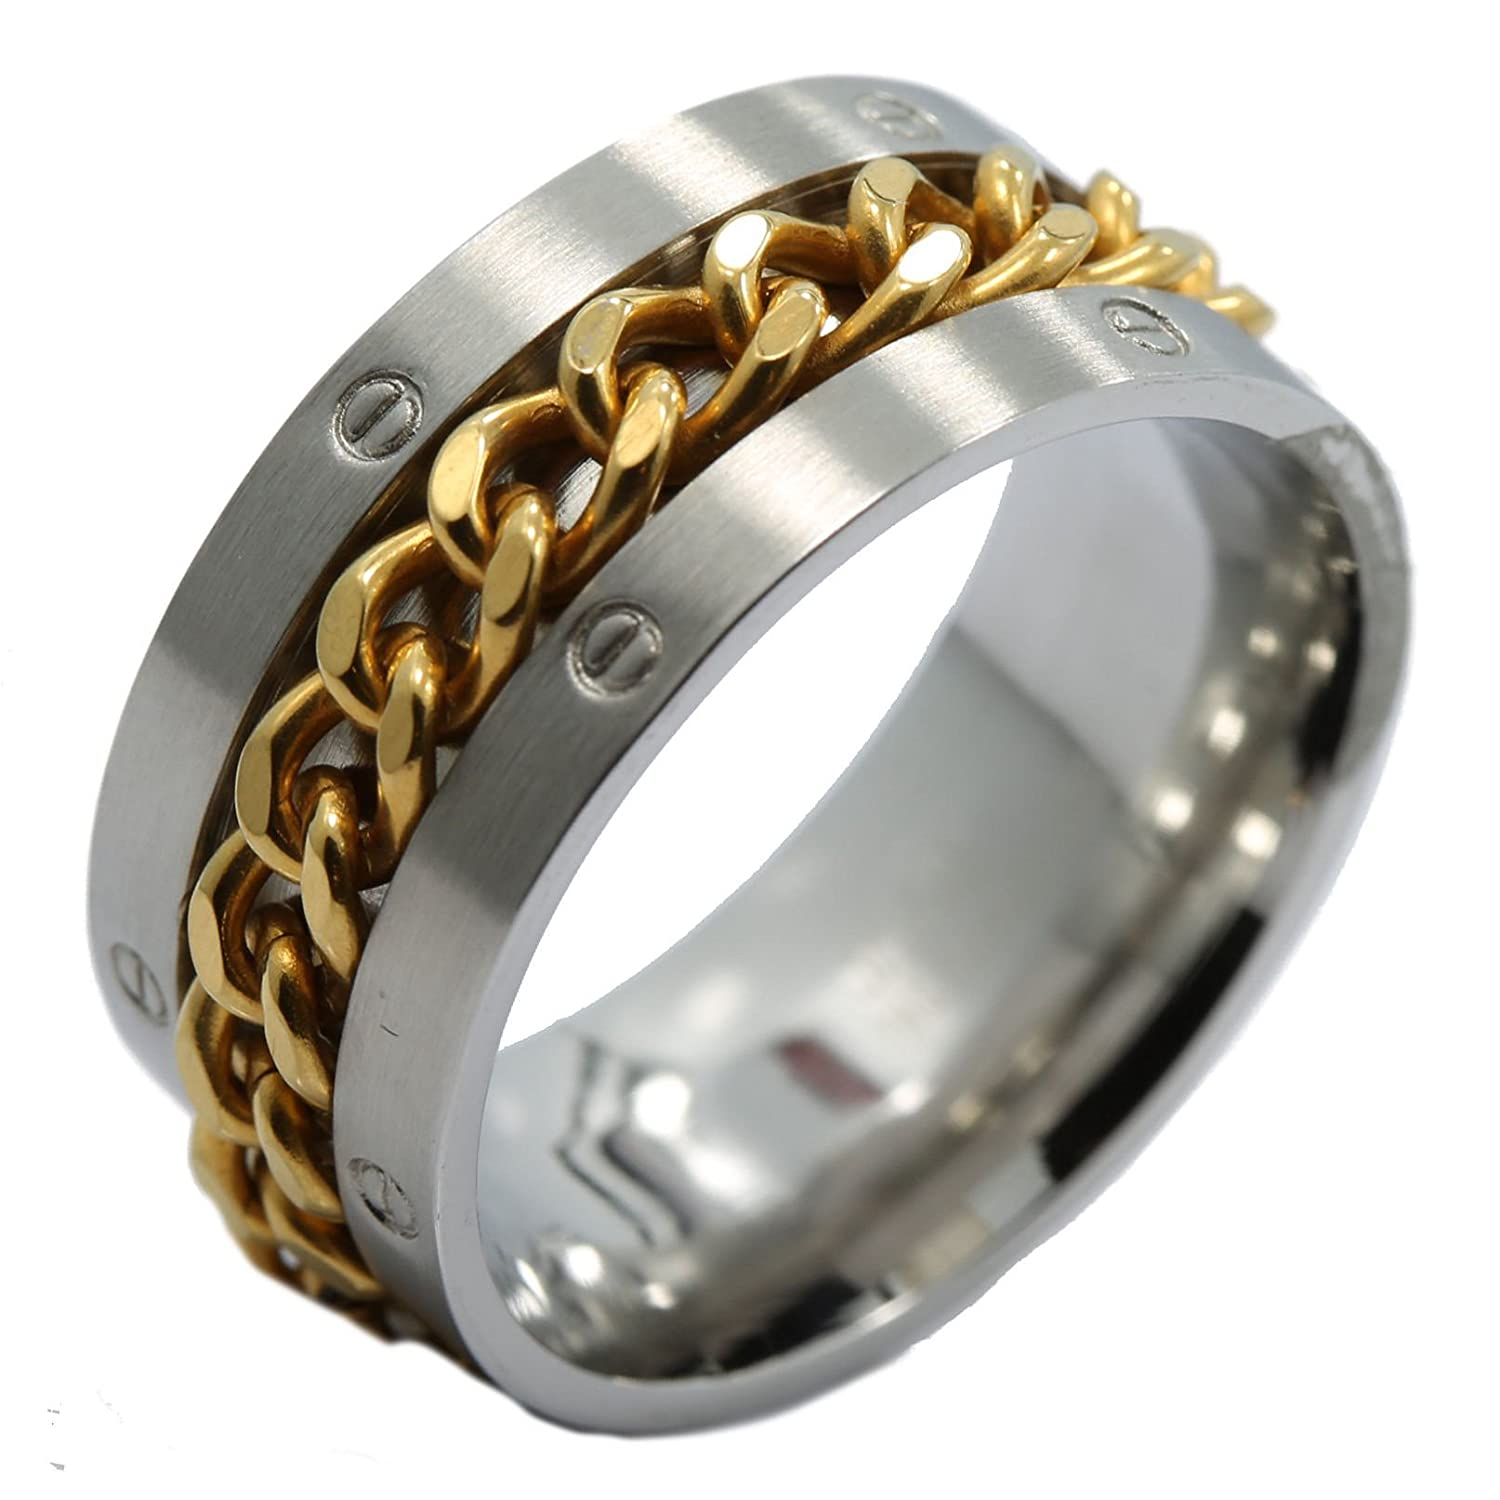 Amazon 11mm Stainless Steel Gold Plated Spinning Chain Wedding Band Ring Spikes Jewelry: 11 Mm Wedding Bands At Reisefeber.org